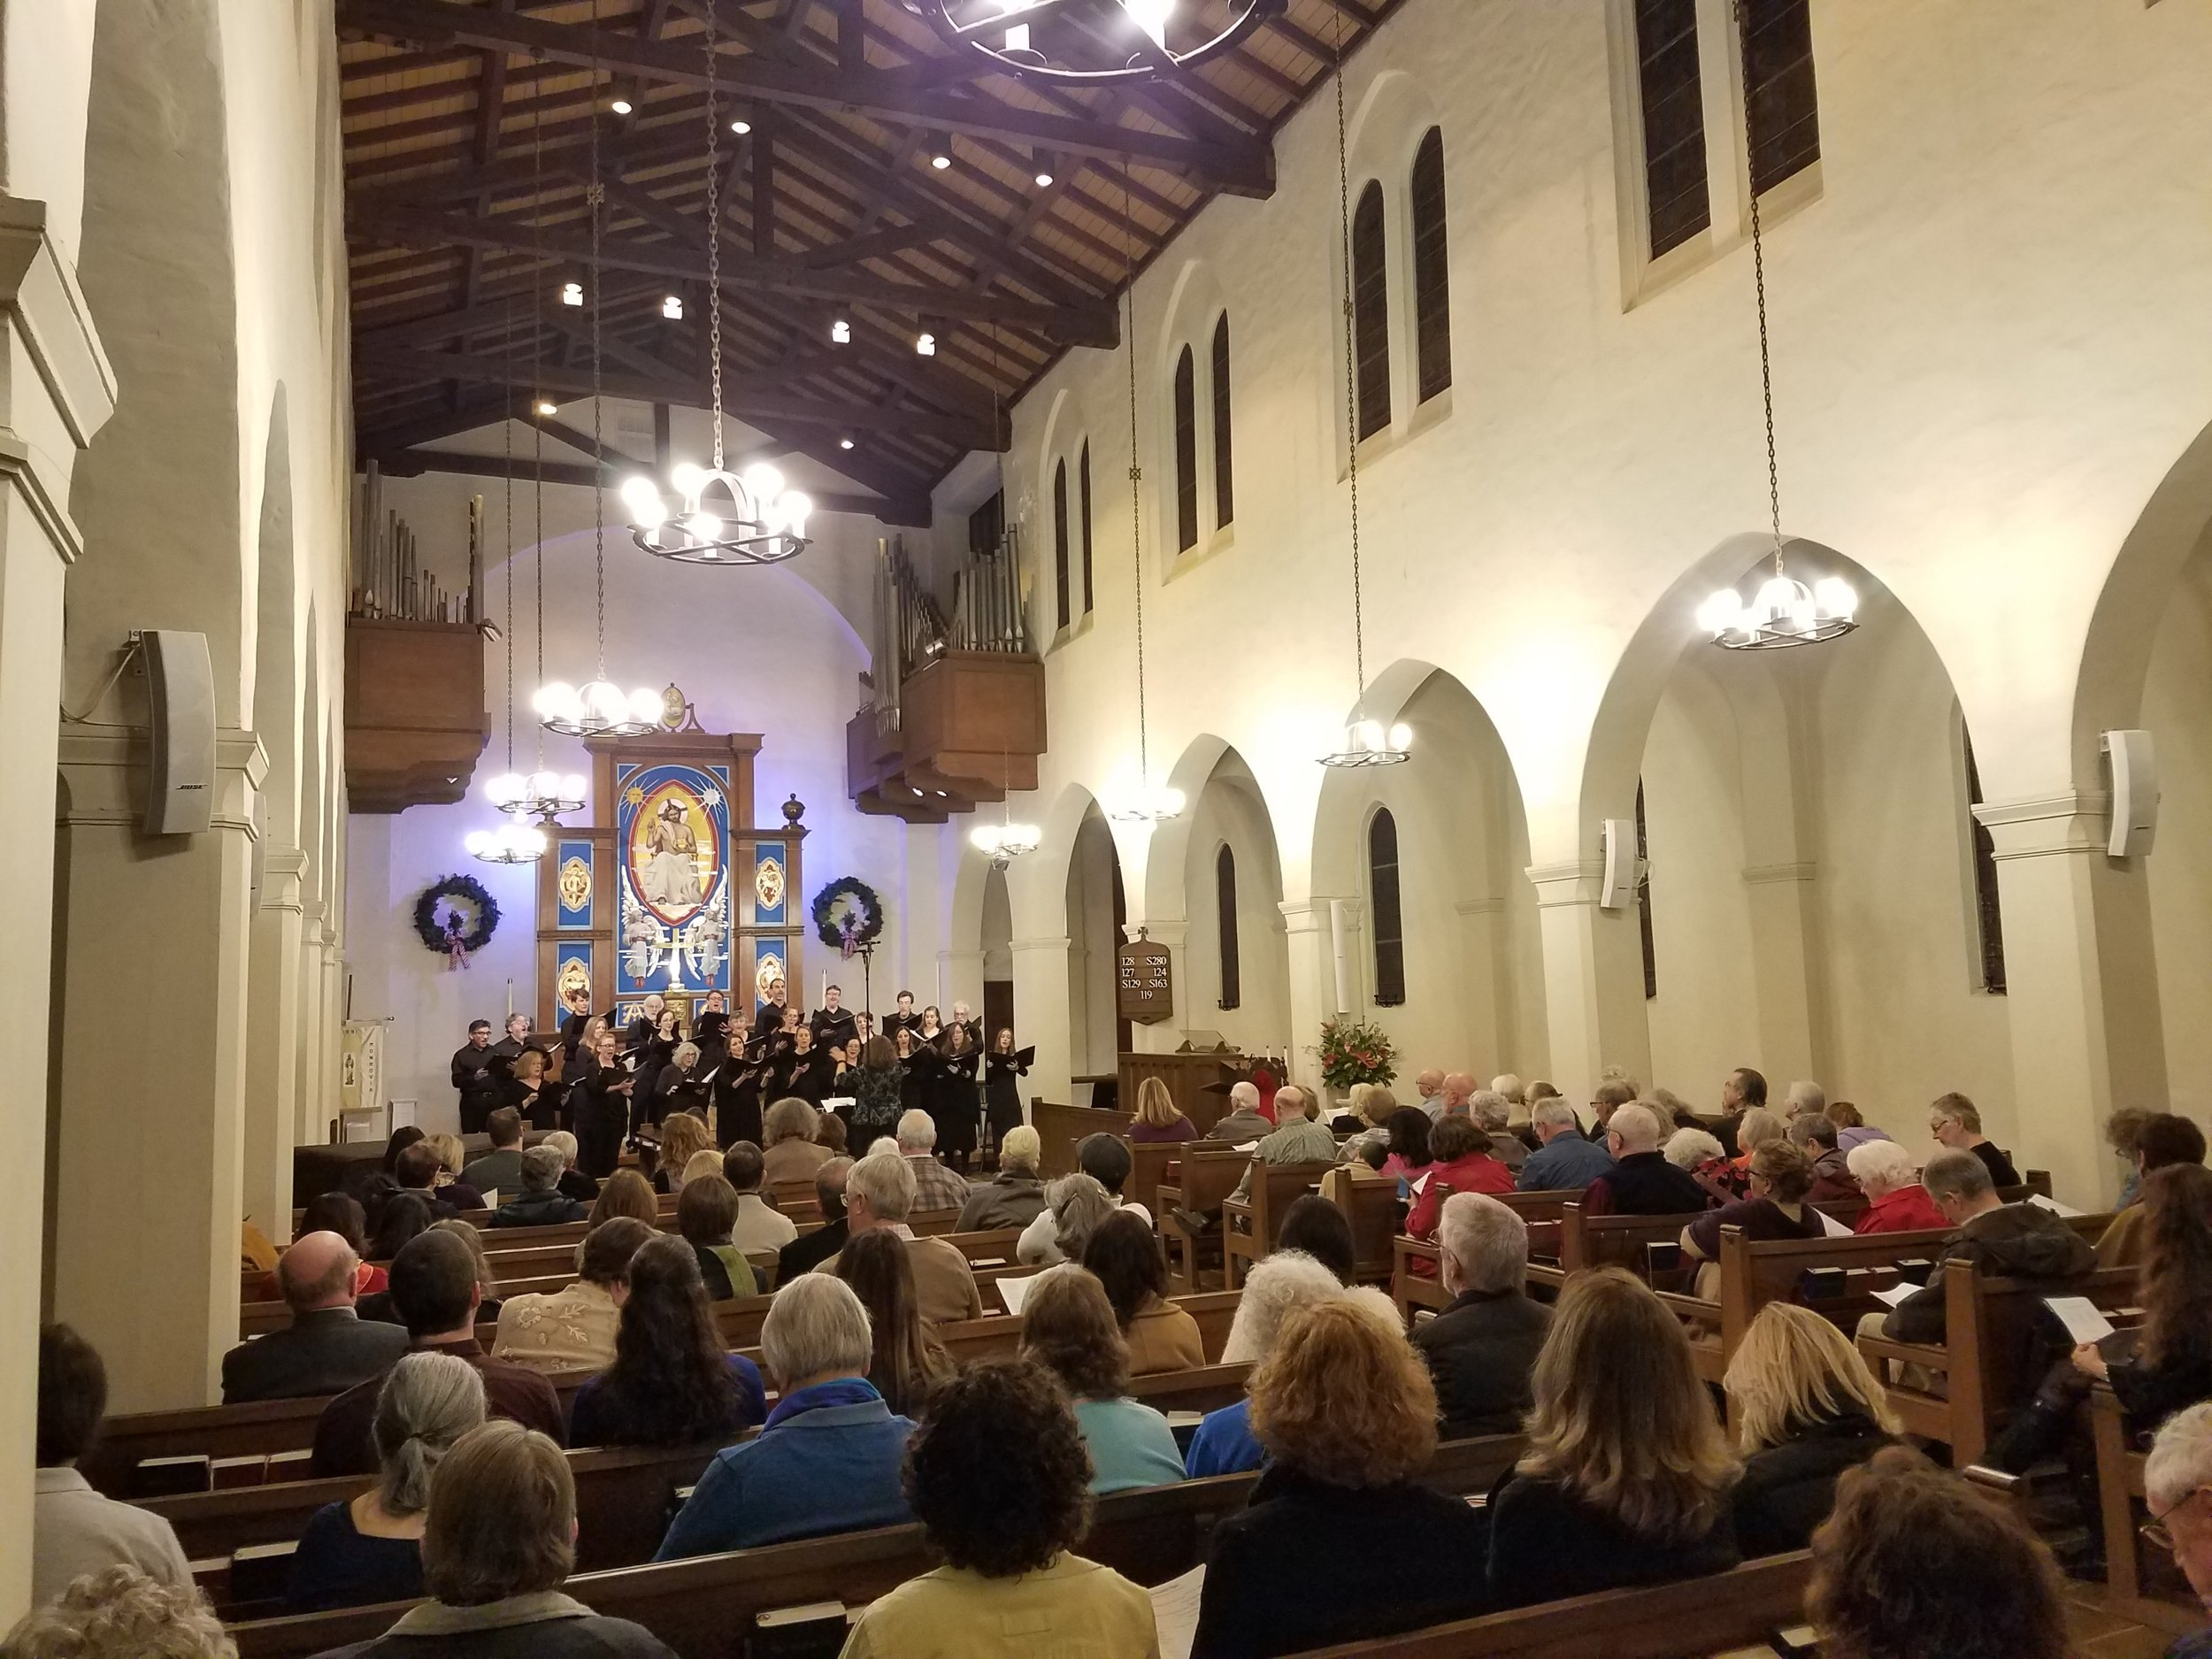 Jouyssance performs at St. Luke's Episcopal Church in Monrovia, CA on January 6, 2019.